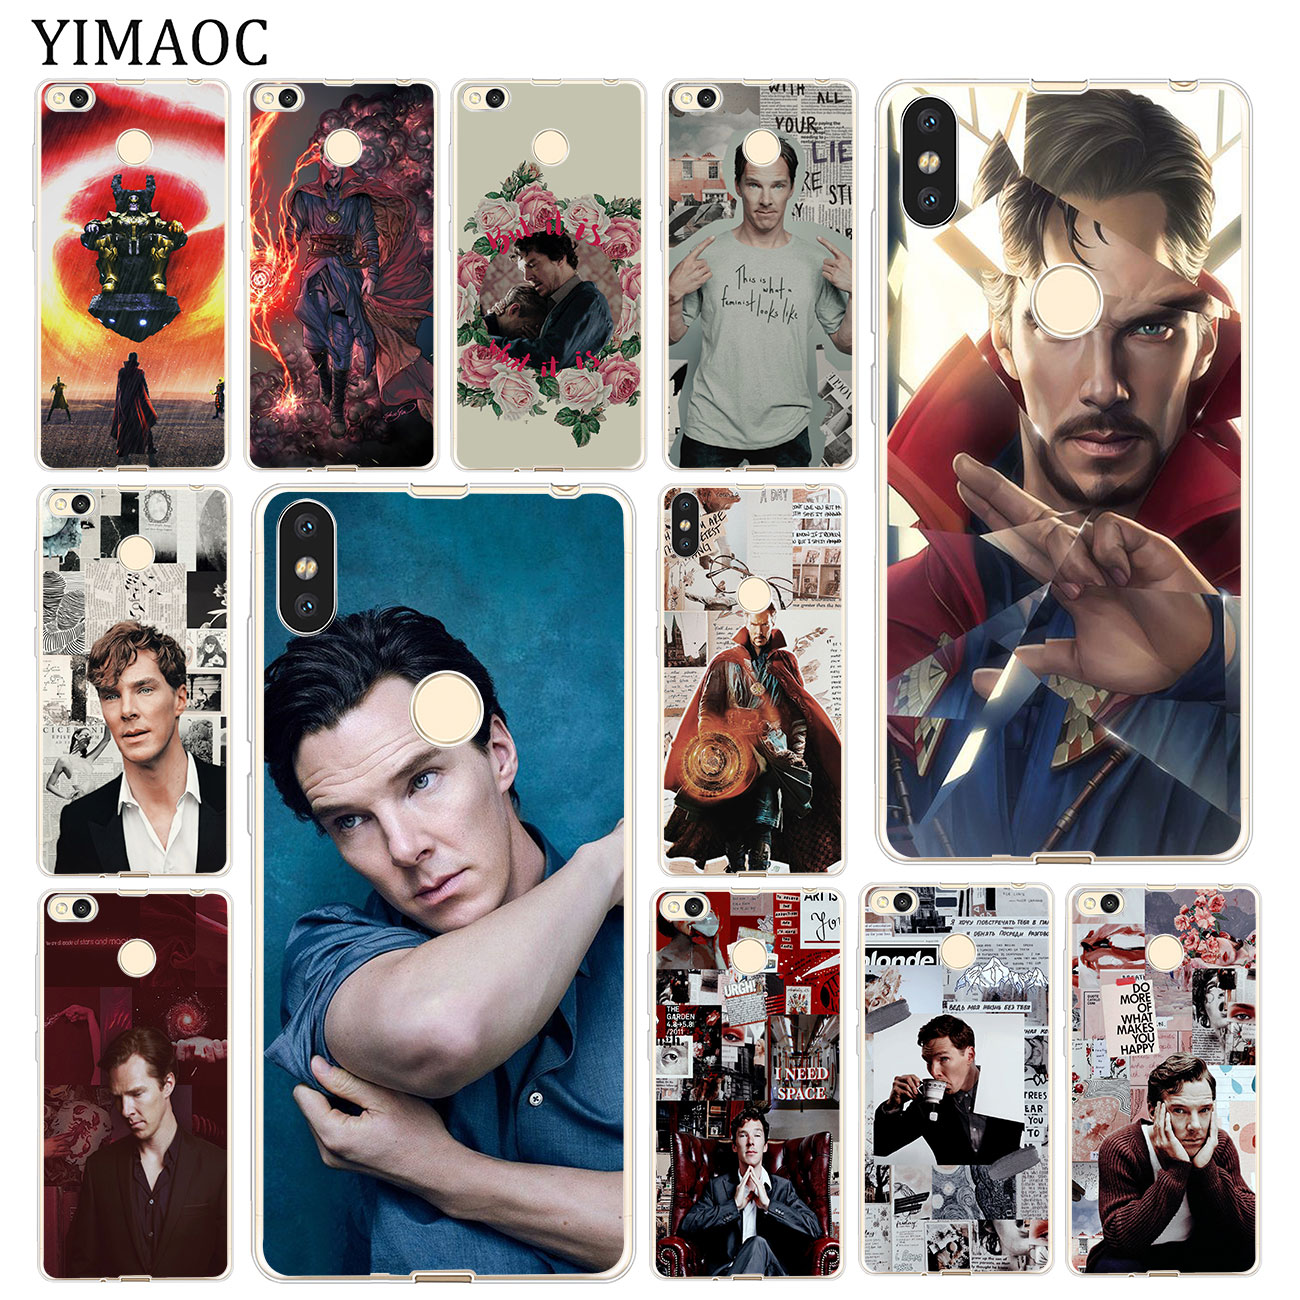 Phone Bags & Cases Adroit Doctor Strange Benedict Cumberbatch Soft Case For Xiaomi Mi 9 8 Se A2 Lite A1 Pocophone F1 Mix 2s Max 3 Phone Cover Mi9 Mi8 Mia2 Spare No Cost At Any Cost Fitted Cases